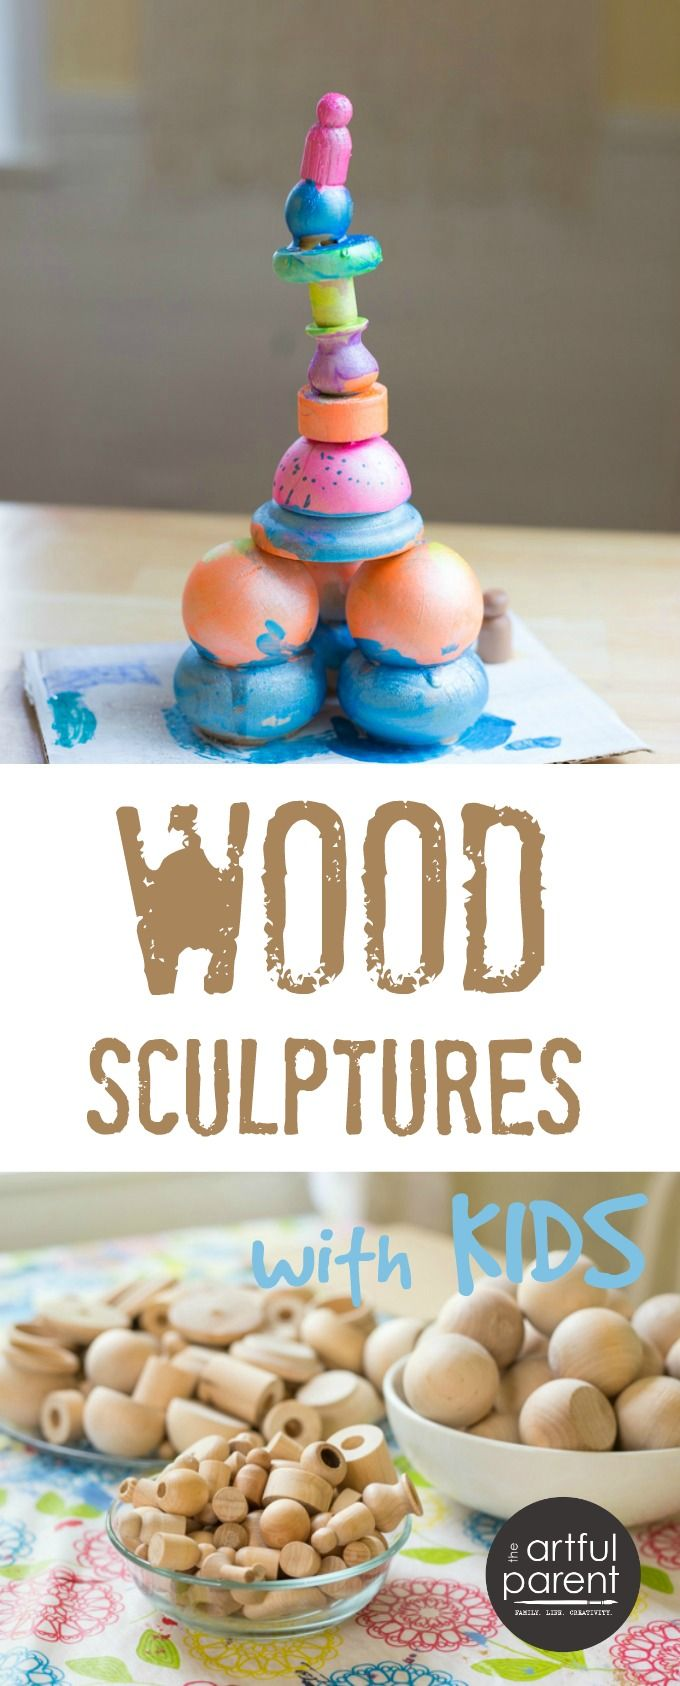 Wood sculptures for kids are easy to make with wood scraps and glue. They can paint their finished wood sculptures & even add detail with permanent markers.